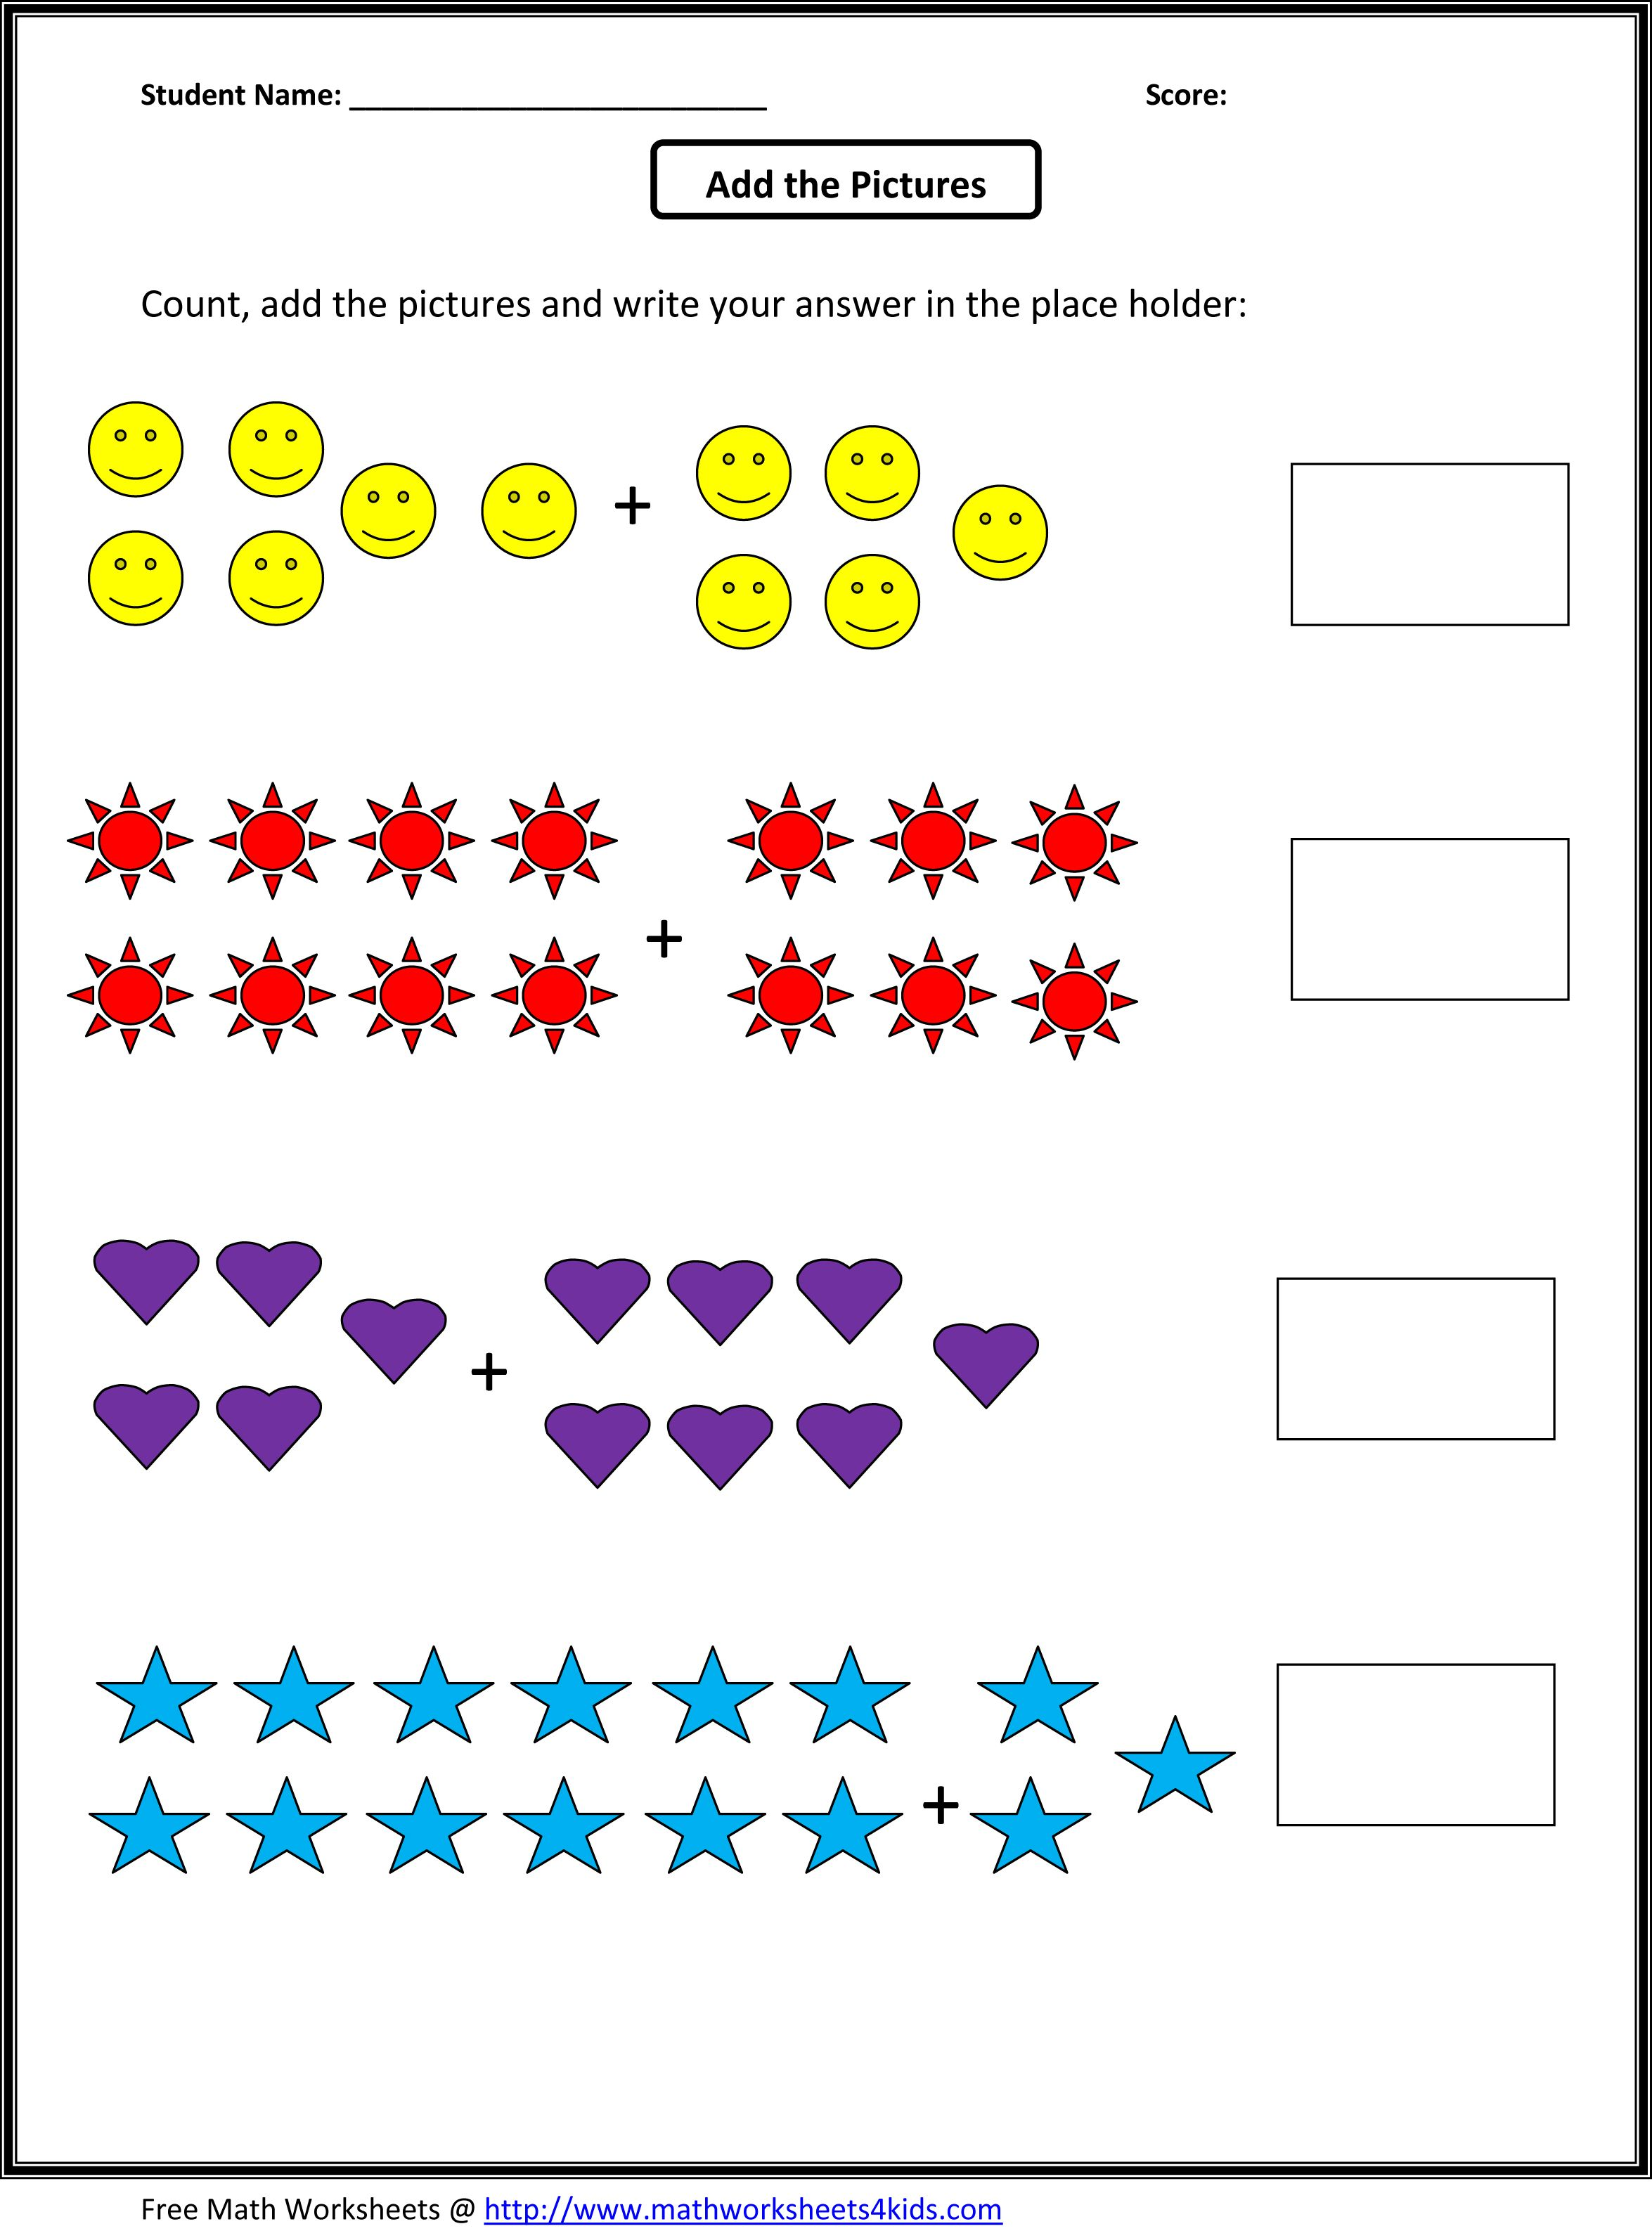 worksheet 1st Grade Math Worksheets grade 1 addition math worksheets first worksheets